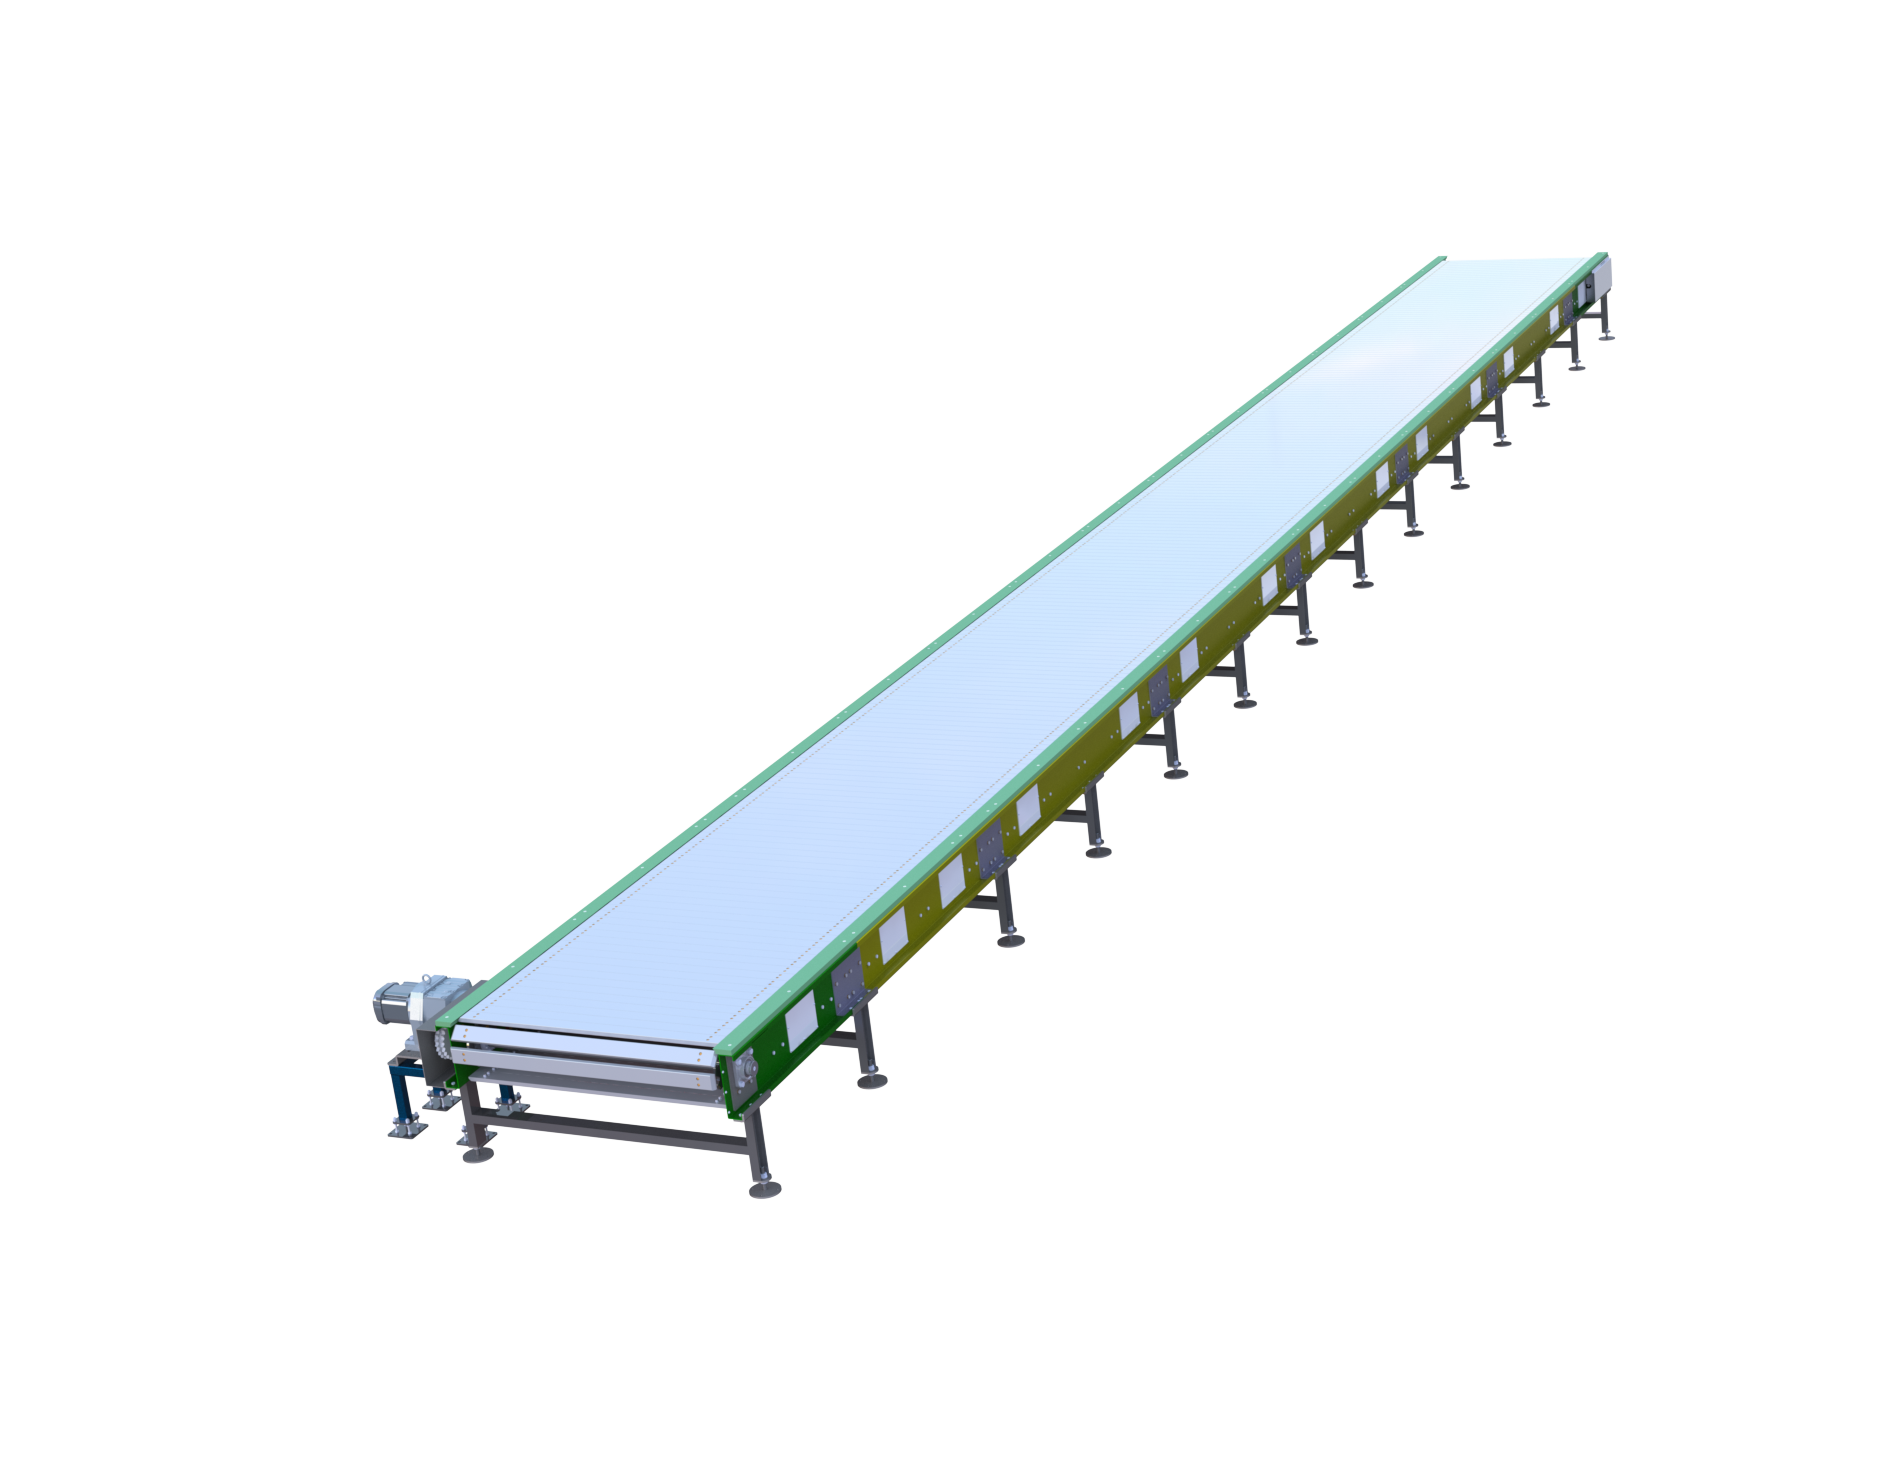 Palet Conveyor - Slat Conveyor